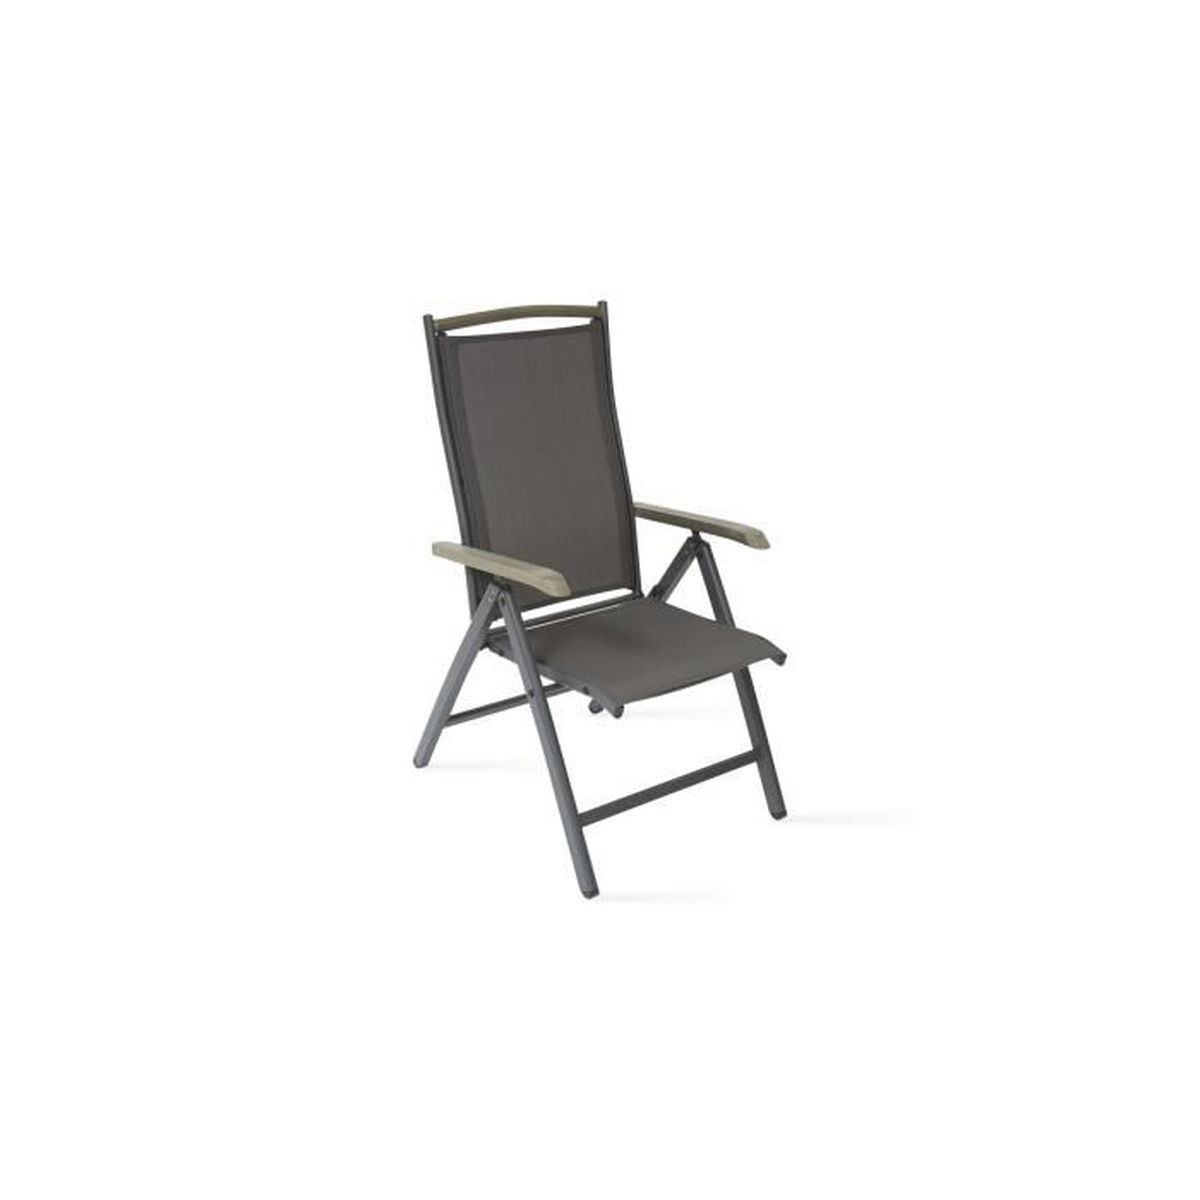 fauteuil de jardin inclinable achat vente fauteuil de jardin inclinable pas cher les. Black Bedroom Furniture Sets. Home Design Ideas